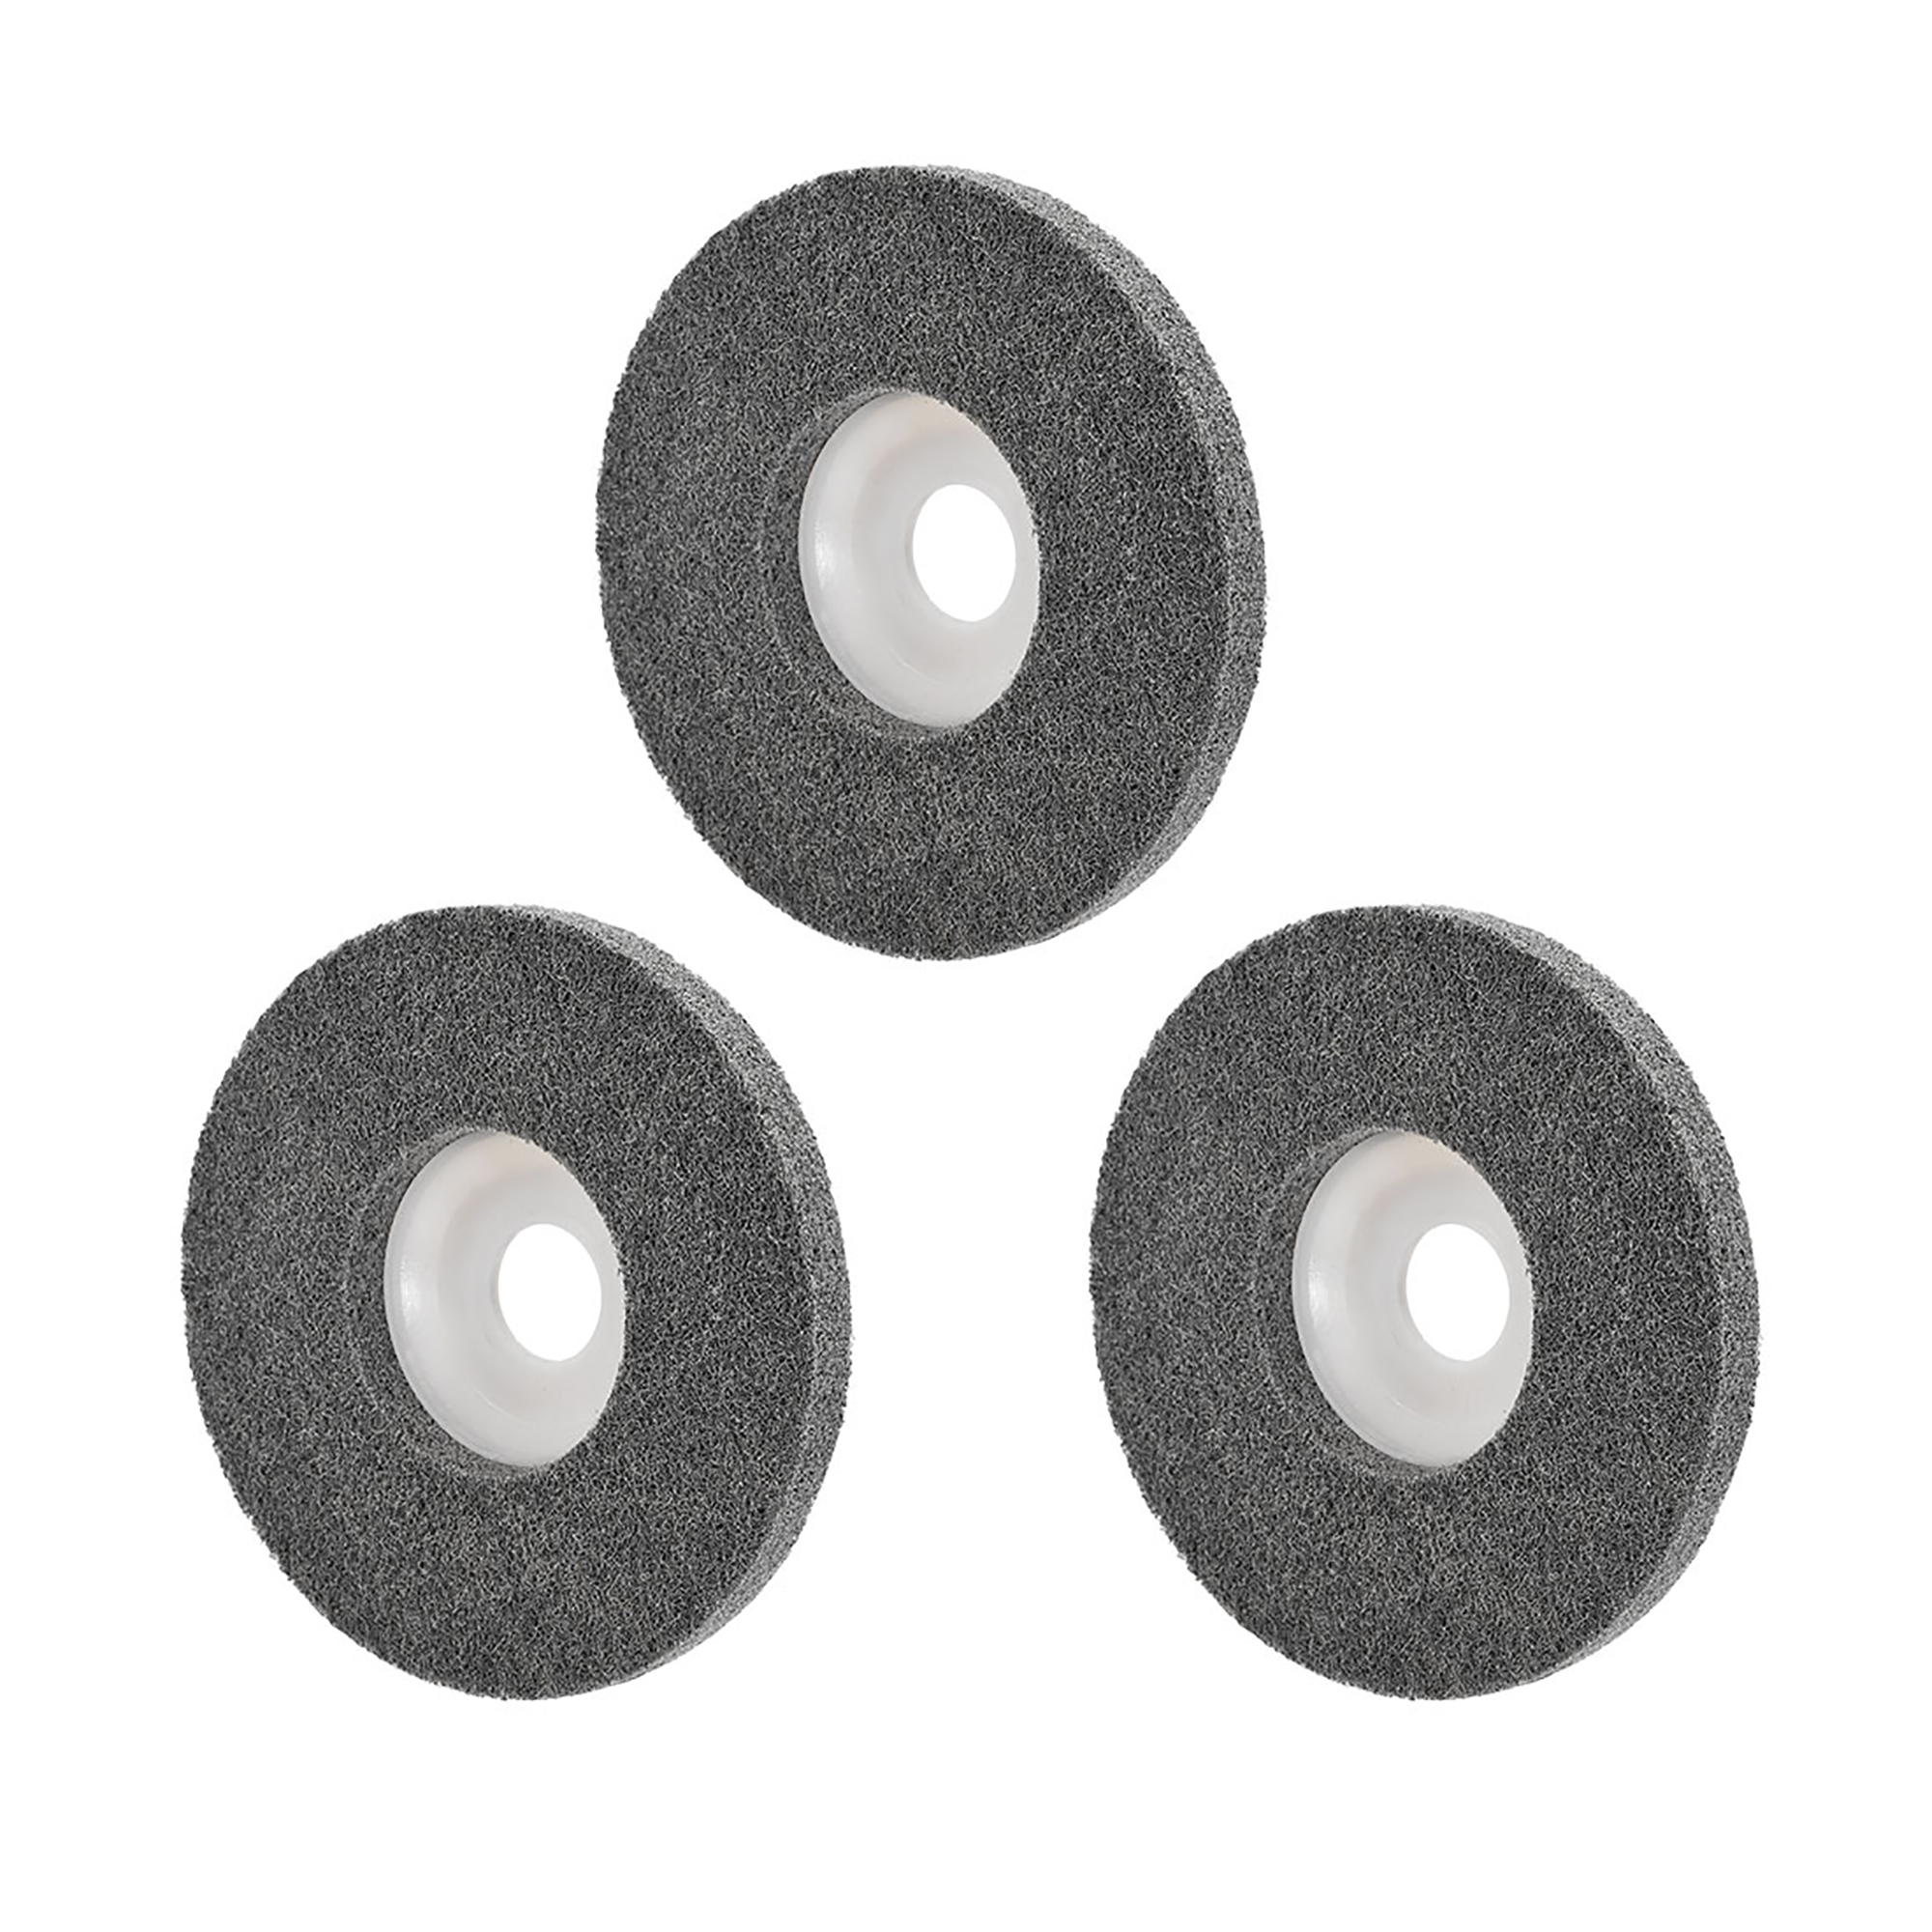 5 Inch Polishing Wheel Buffing Pad Felt Disc for 100 Angle Grinders Red 2pcs